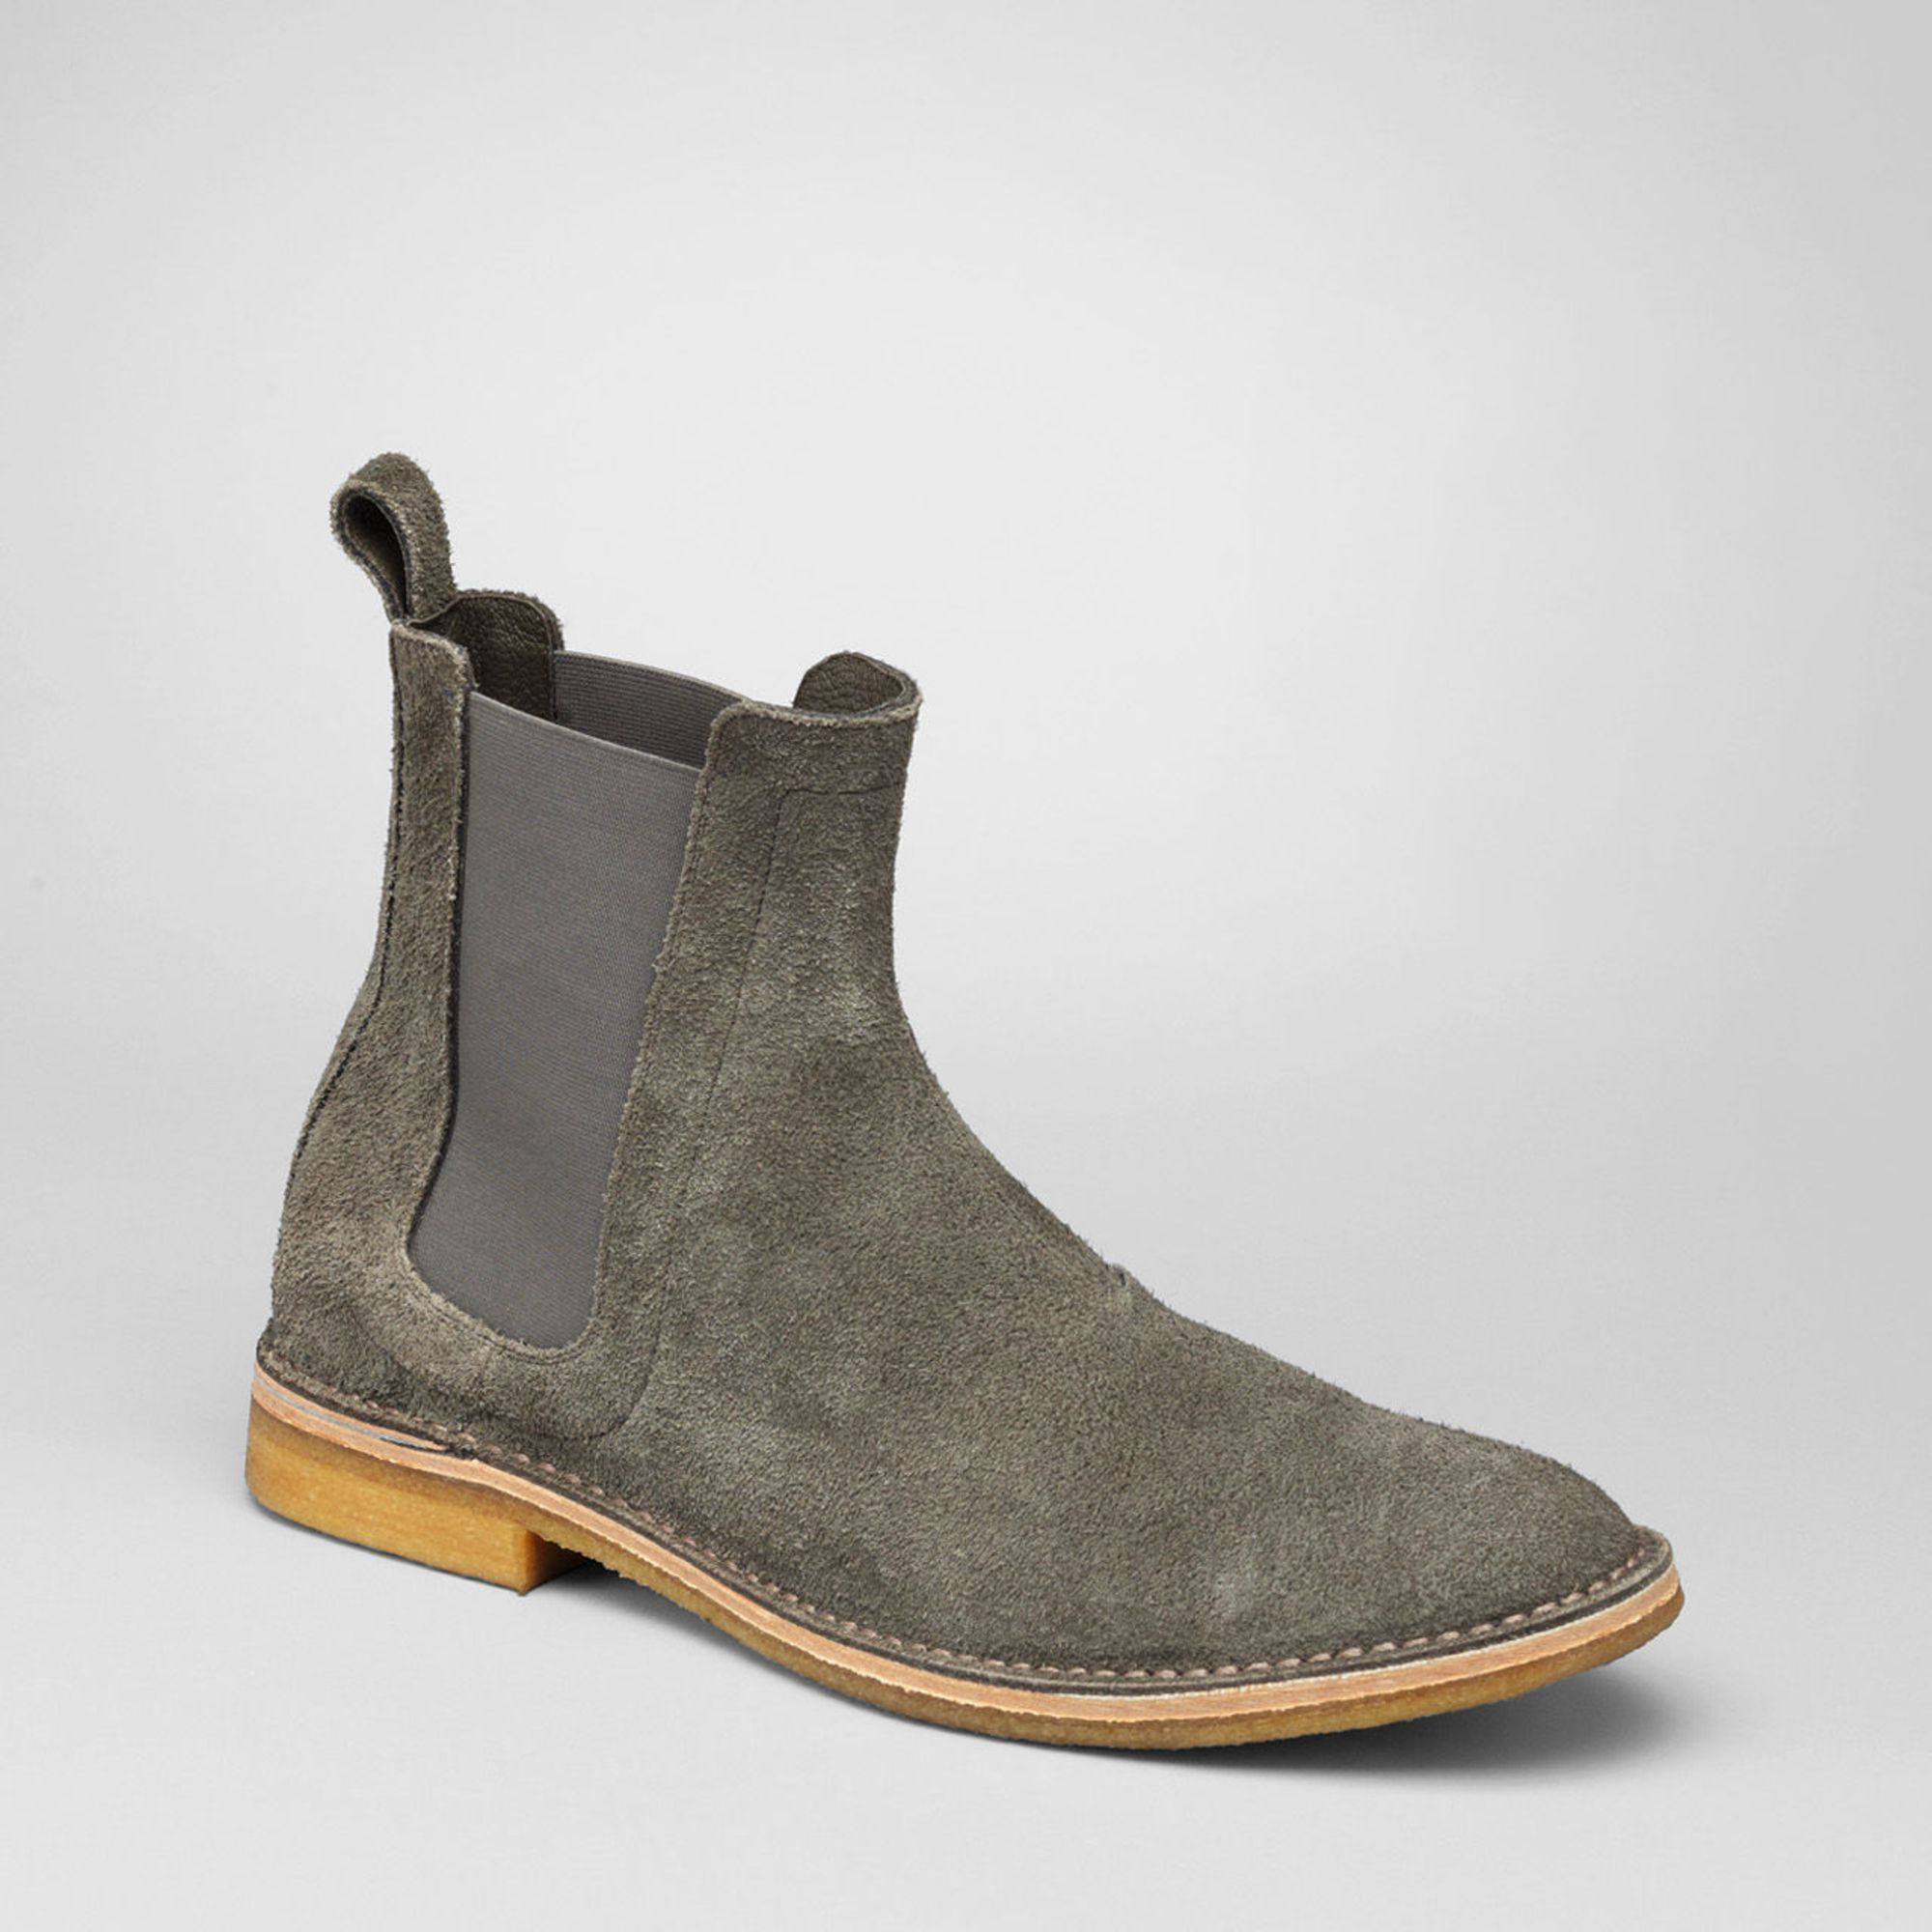 bottega veneta buffalo leather chelsea boots in gray for men shadow lyst. Black Bedroom Furniture Sets. Home Design Ideas